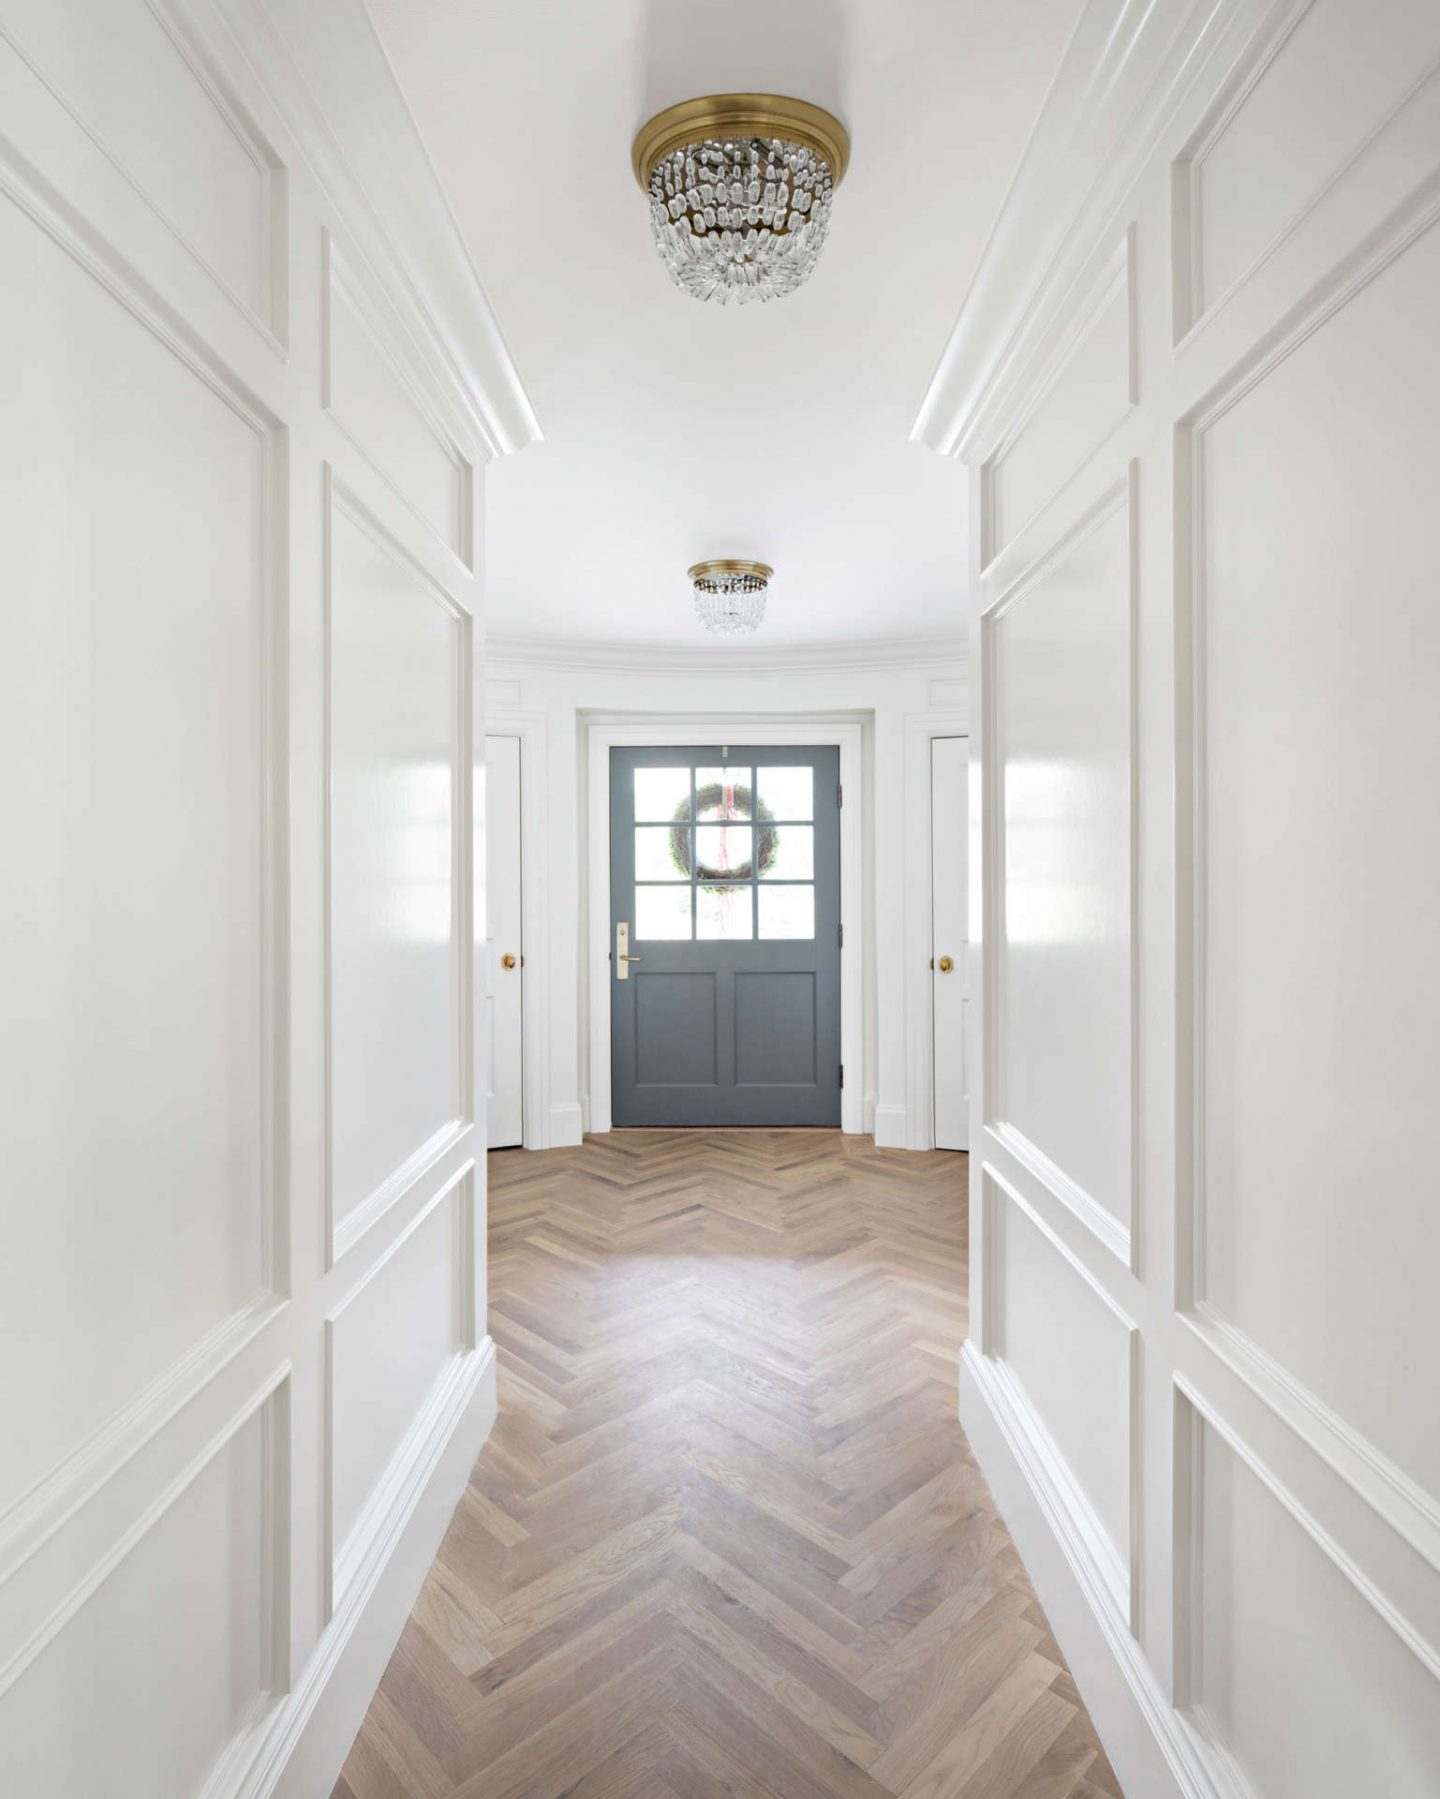 Herringbone flooring and beautiful paneled walls painted Benjamin Moore Simply White in a Tudor home's entry. The Fox Group. Come explore these timeless design ideas...hello lovely indeed. #benjaminmooresimplywhite #interiordesign #thefoxgroup